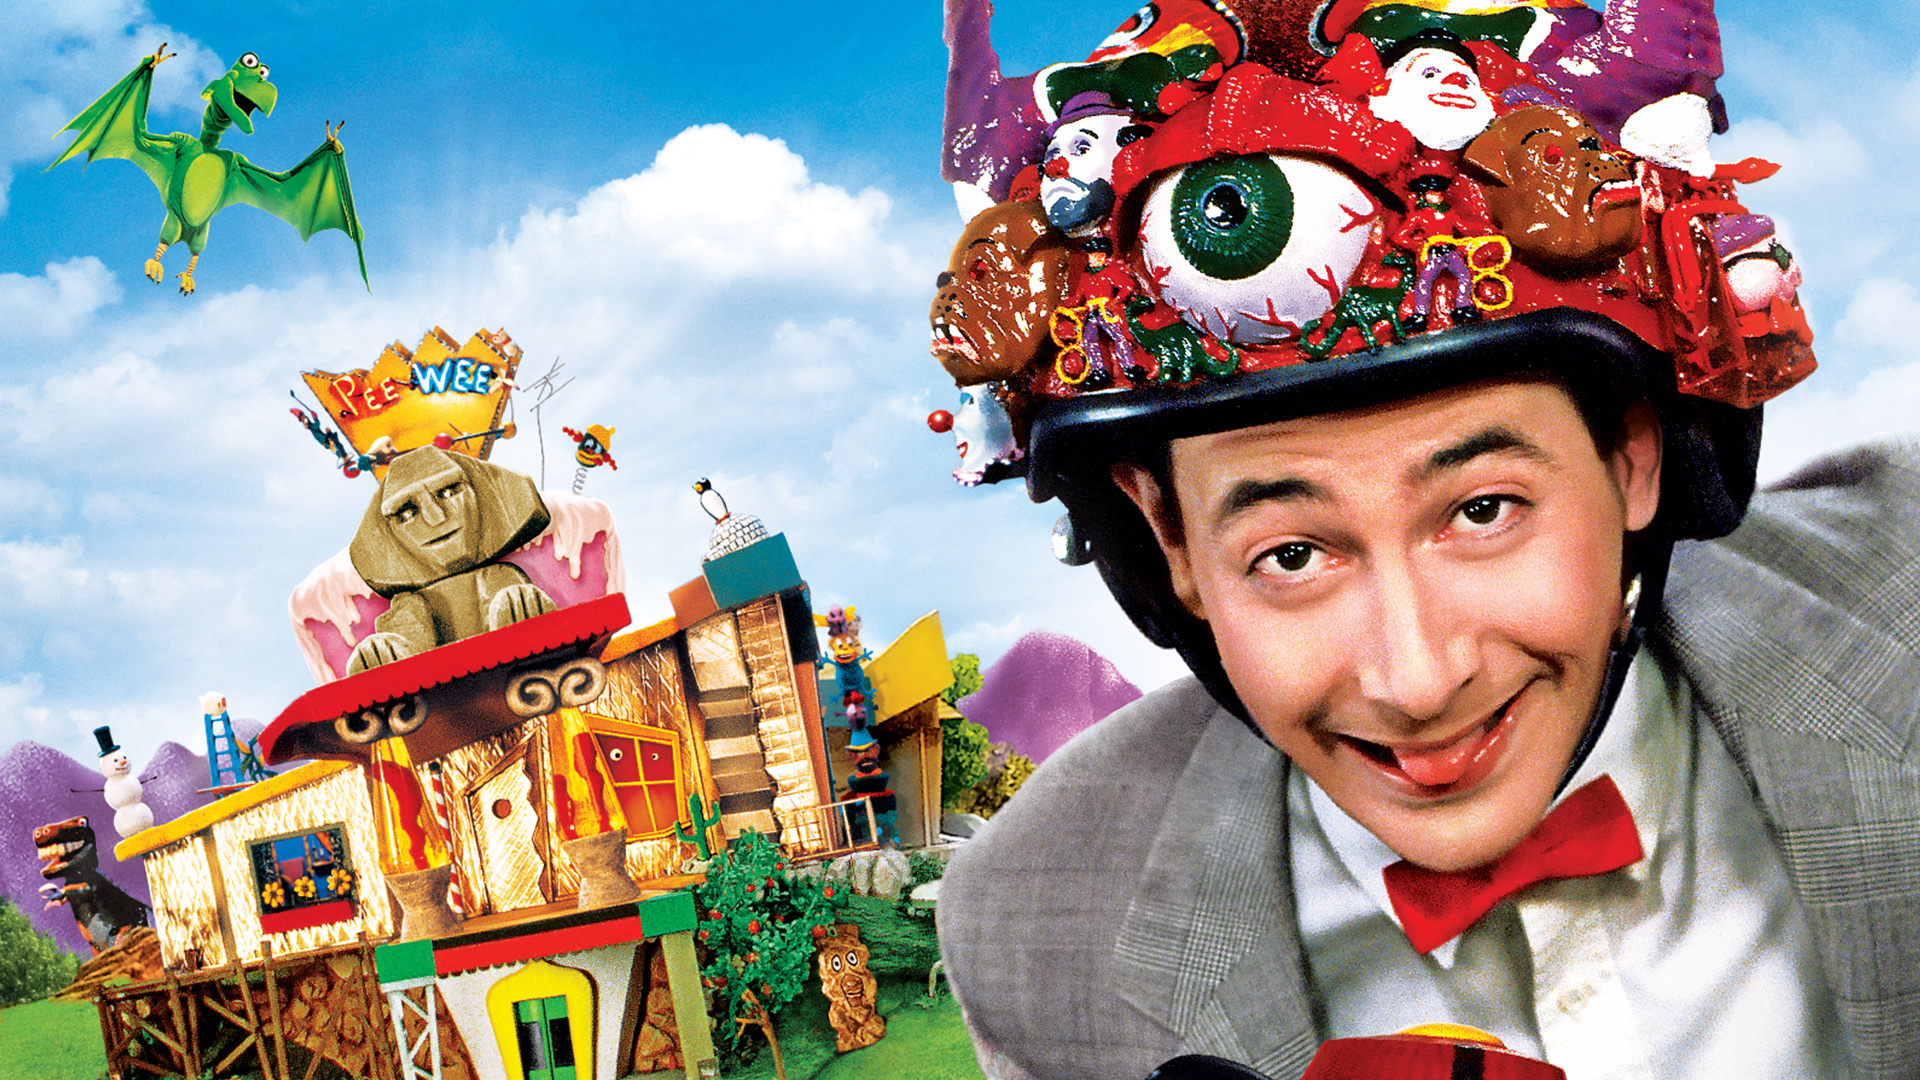 pee-wee's playhouse saturday morning TV 2